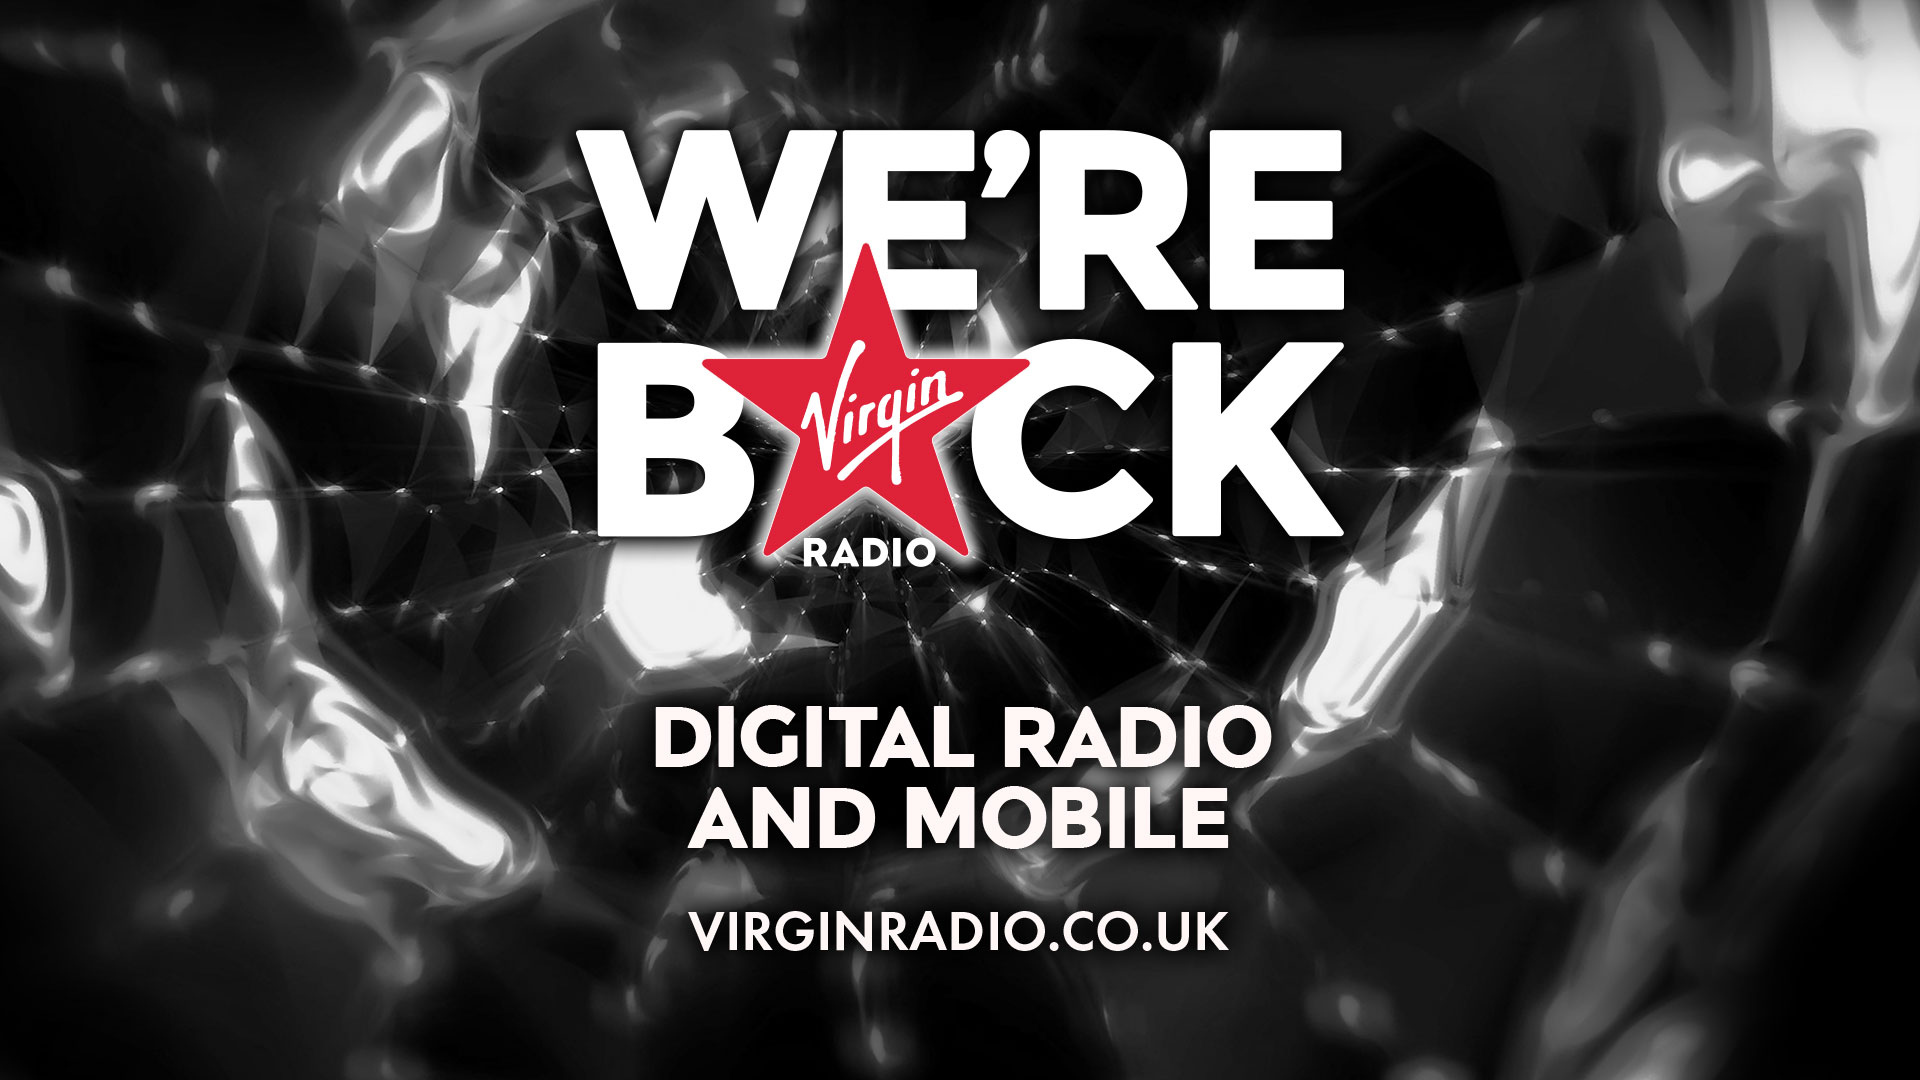 Virgin Radio © Holey & Moley